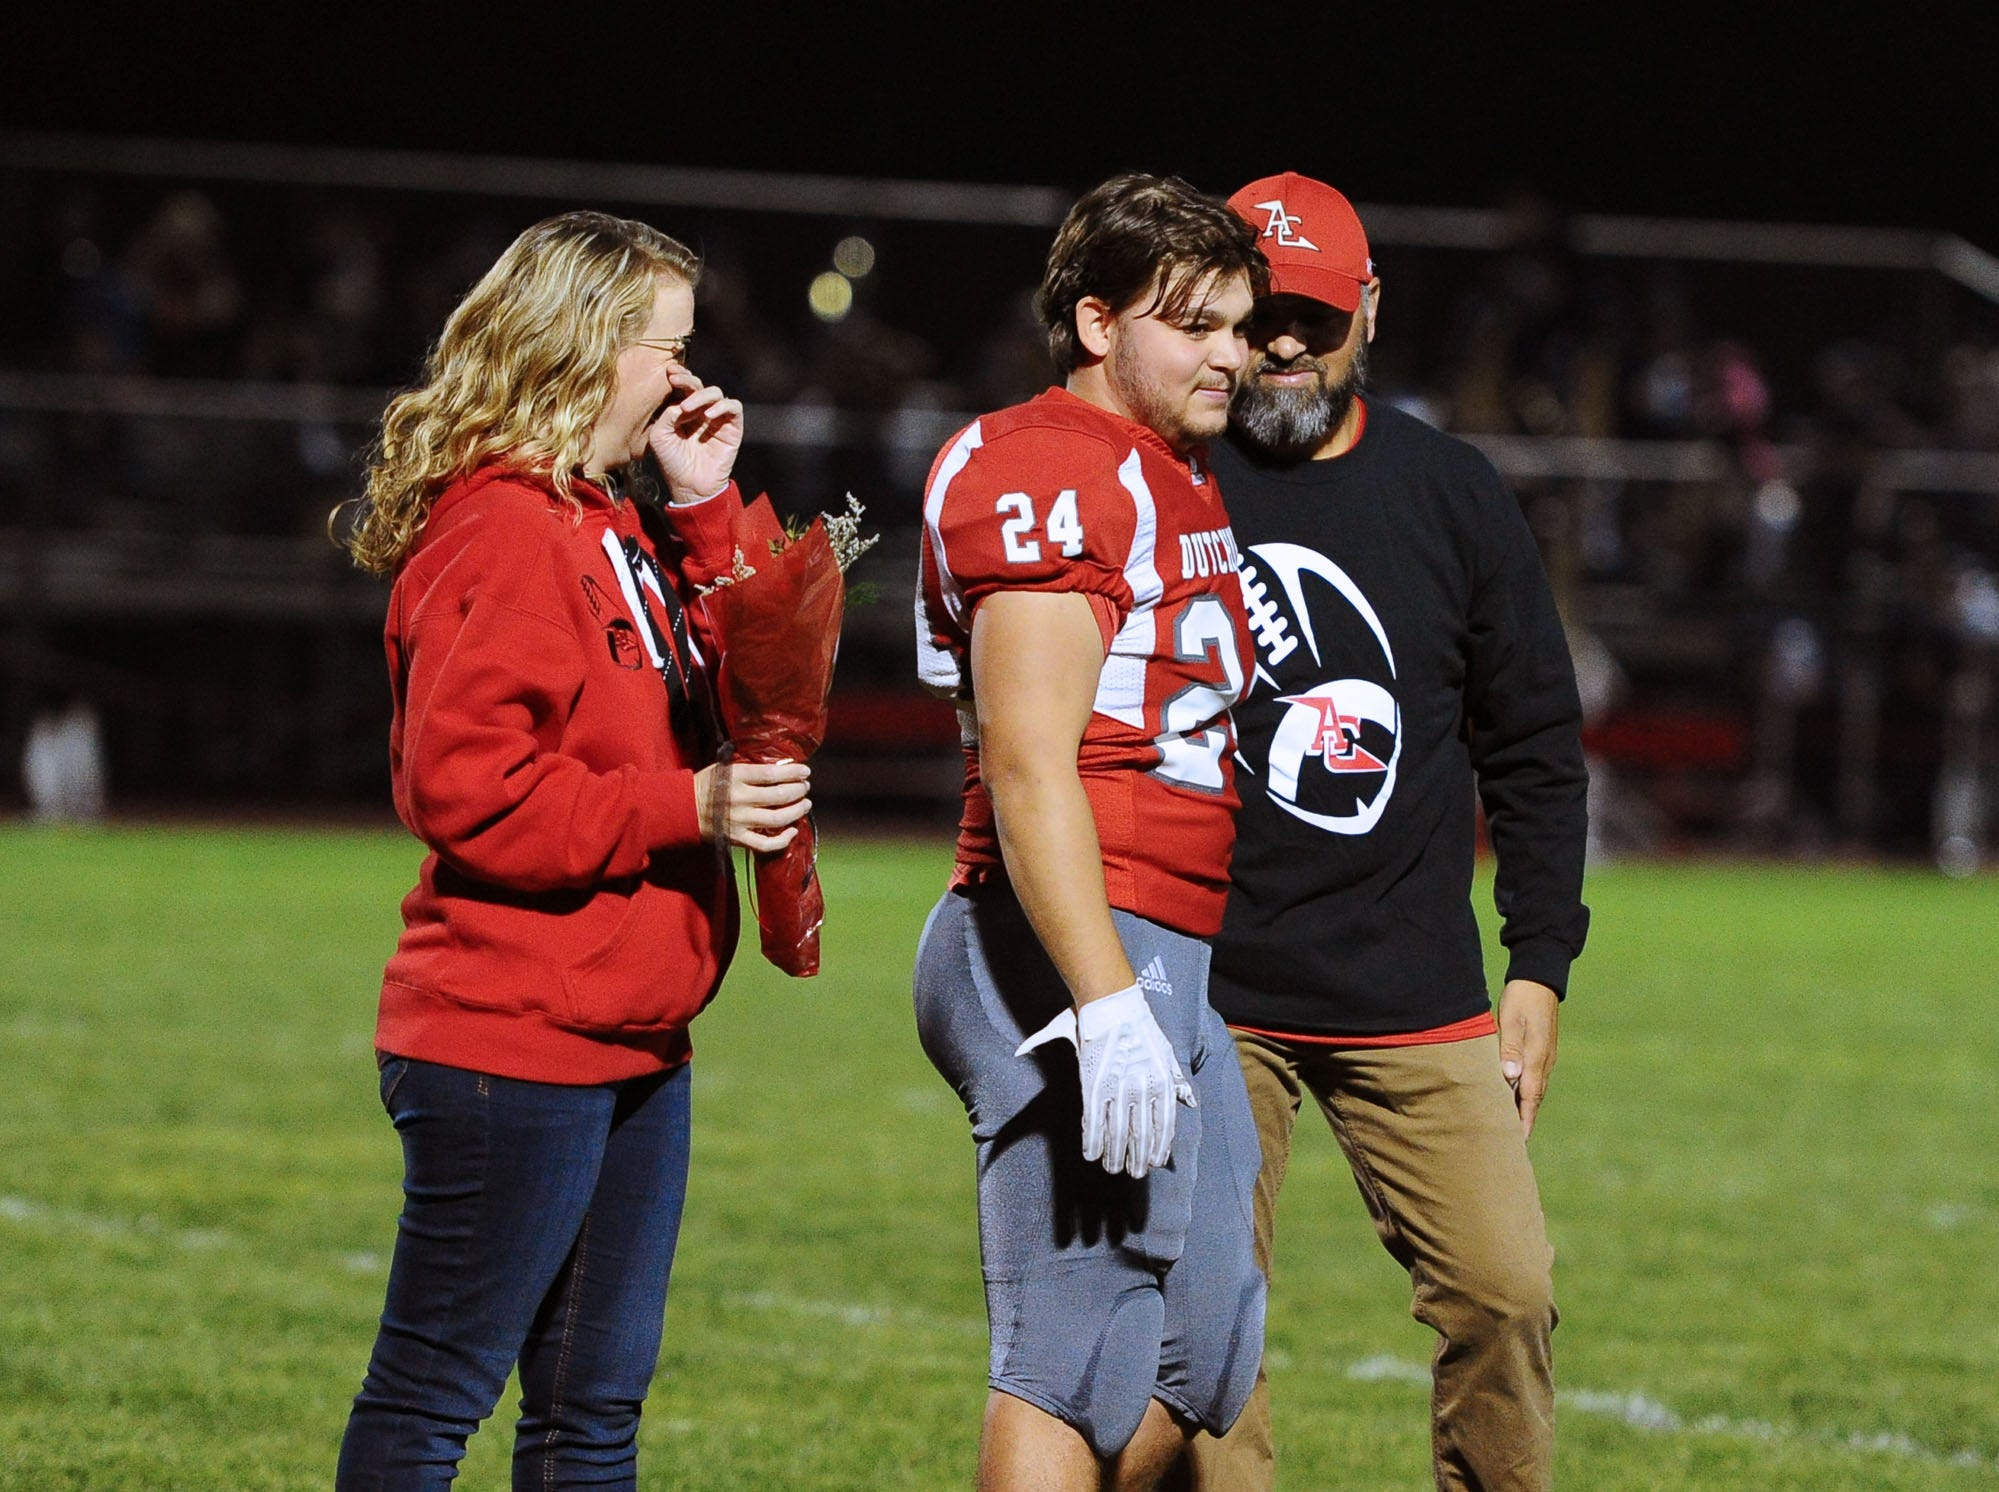 Senior Caleb Turner with his parents on Senior Night before a game played Friday Oct.19,2018 at Annville Cleona H.S.